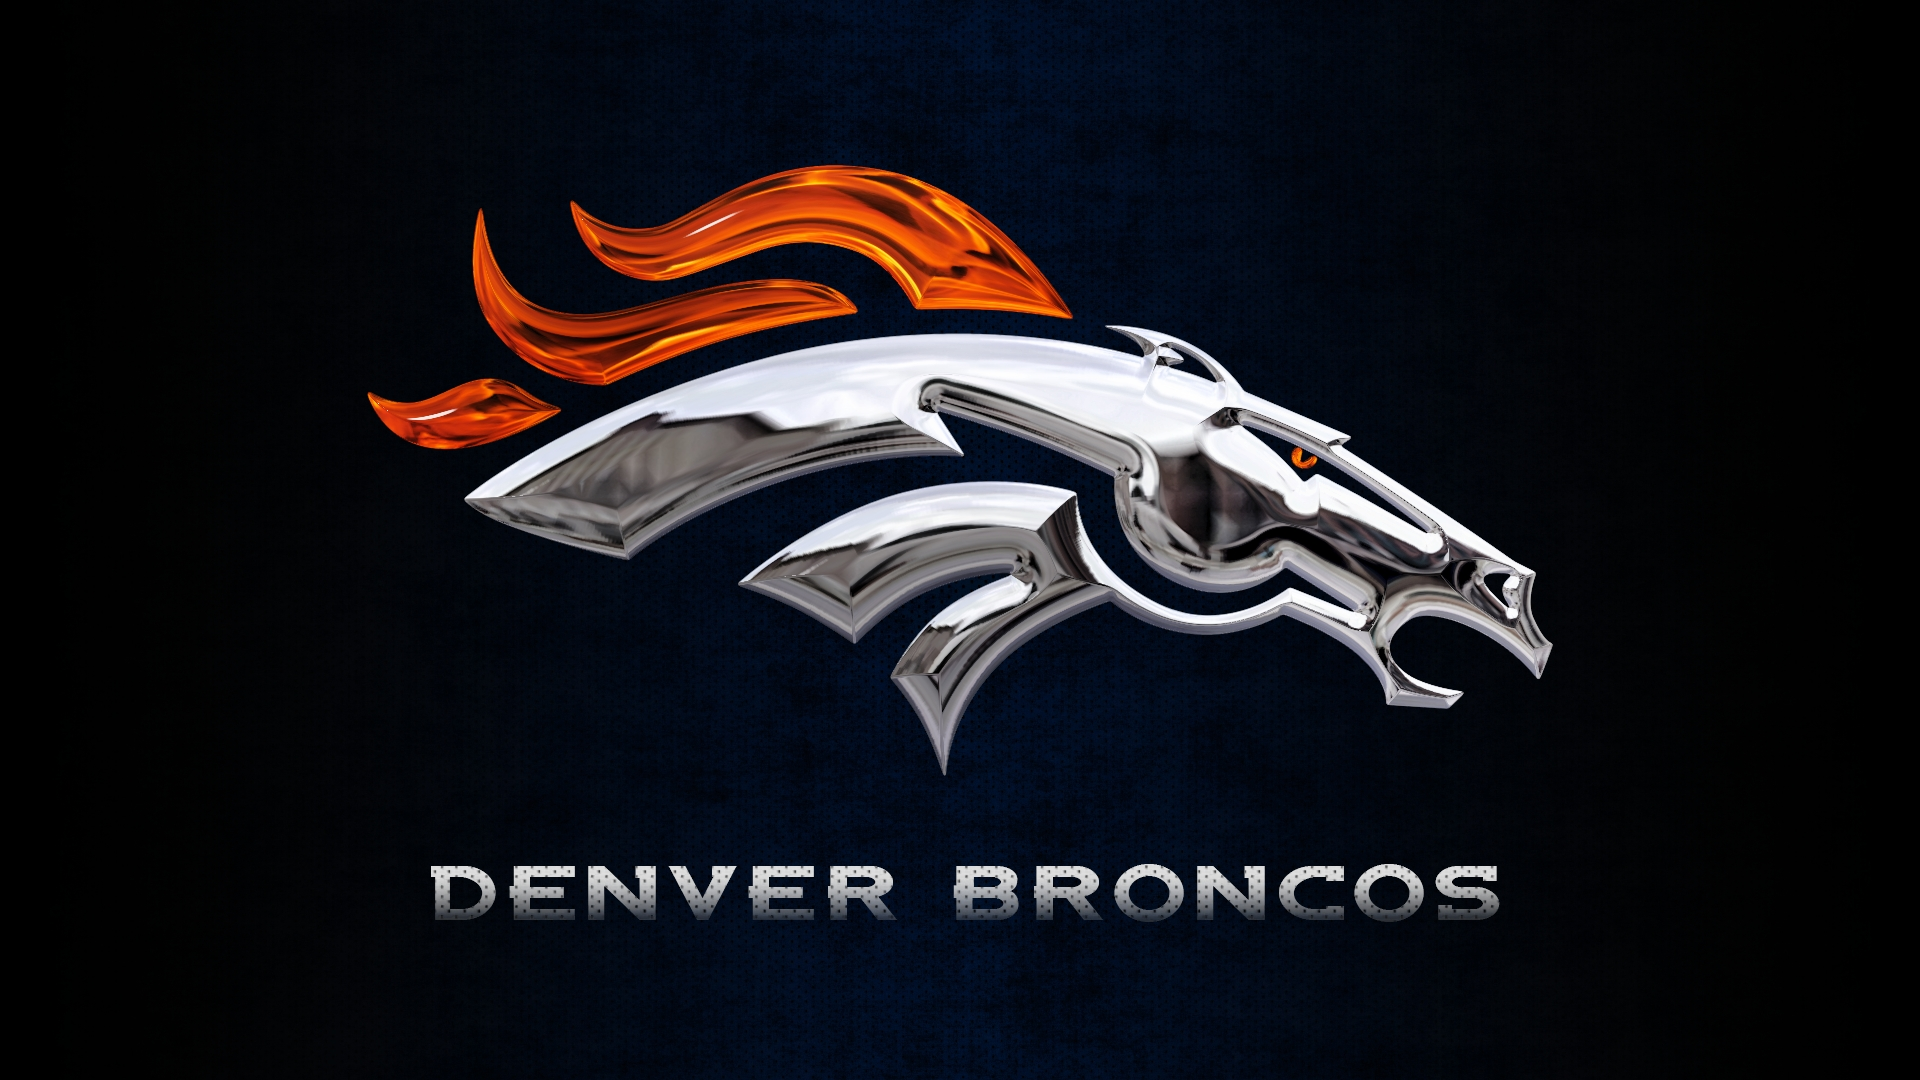 images denver broncos logo wallpaper - media file | pixelstalk